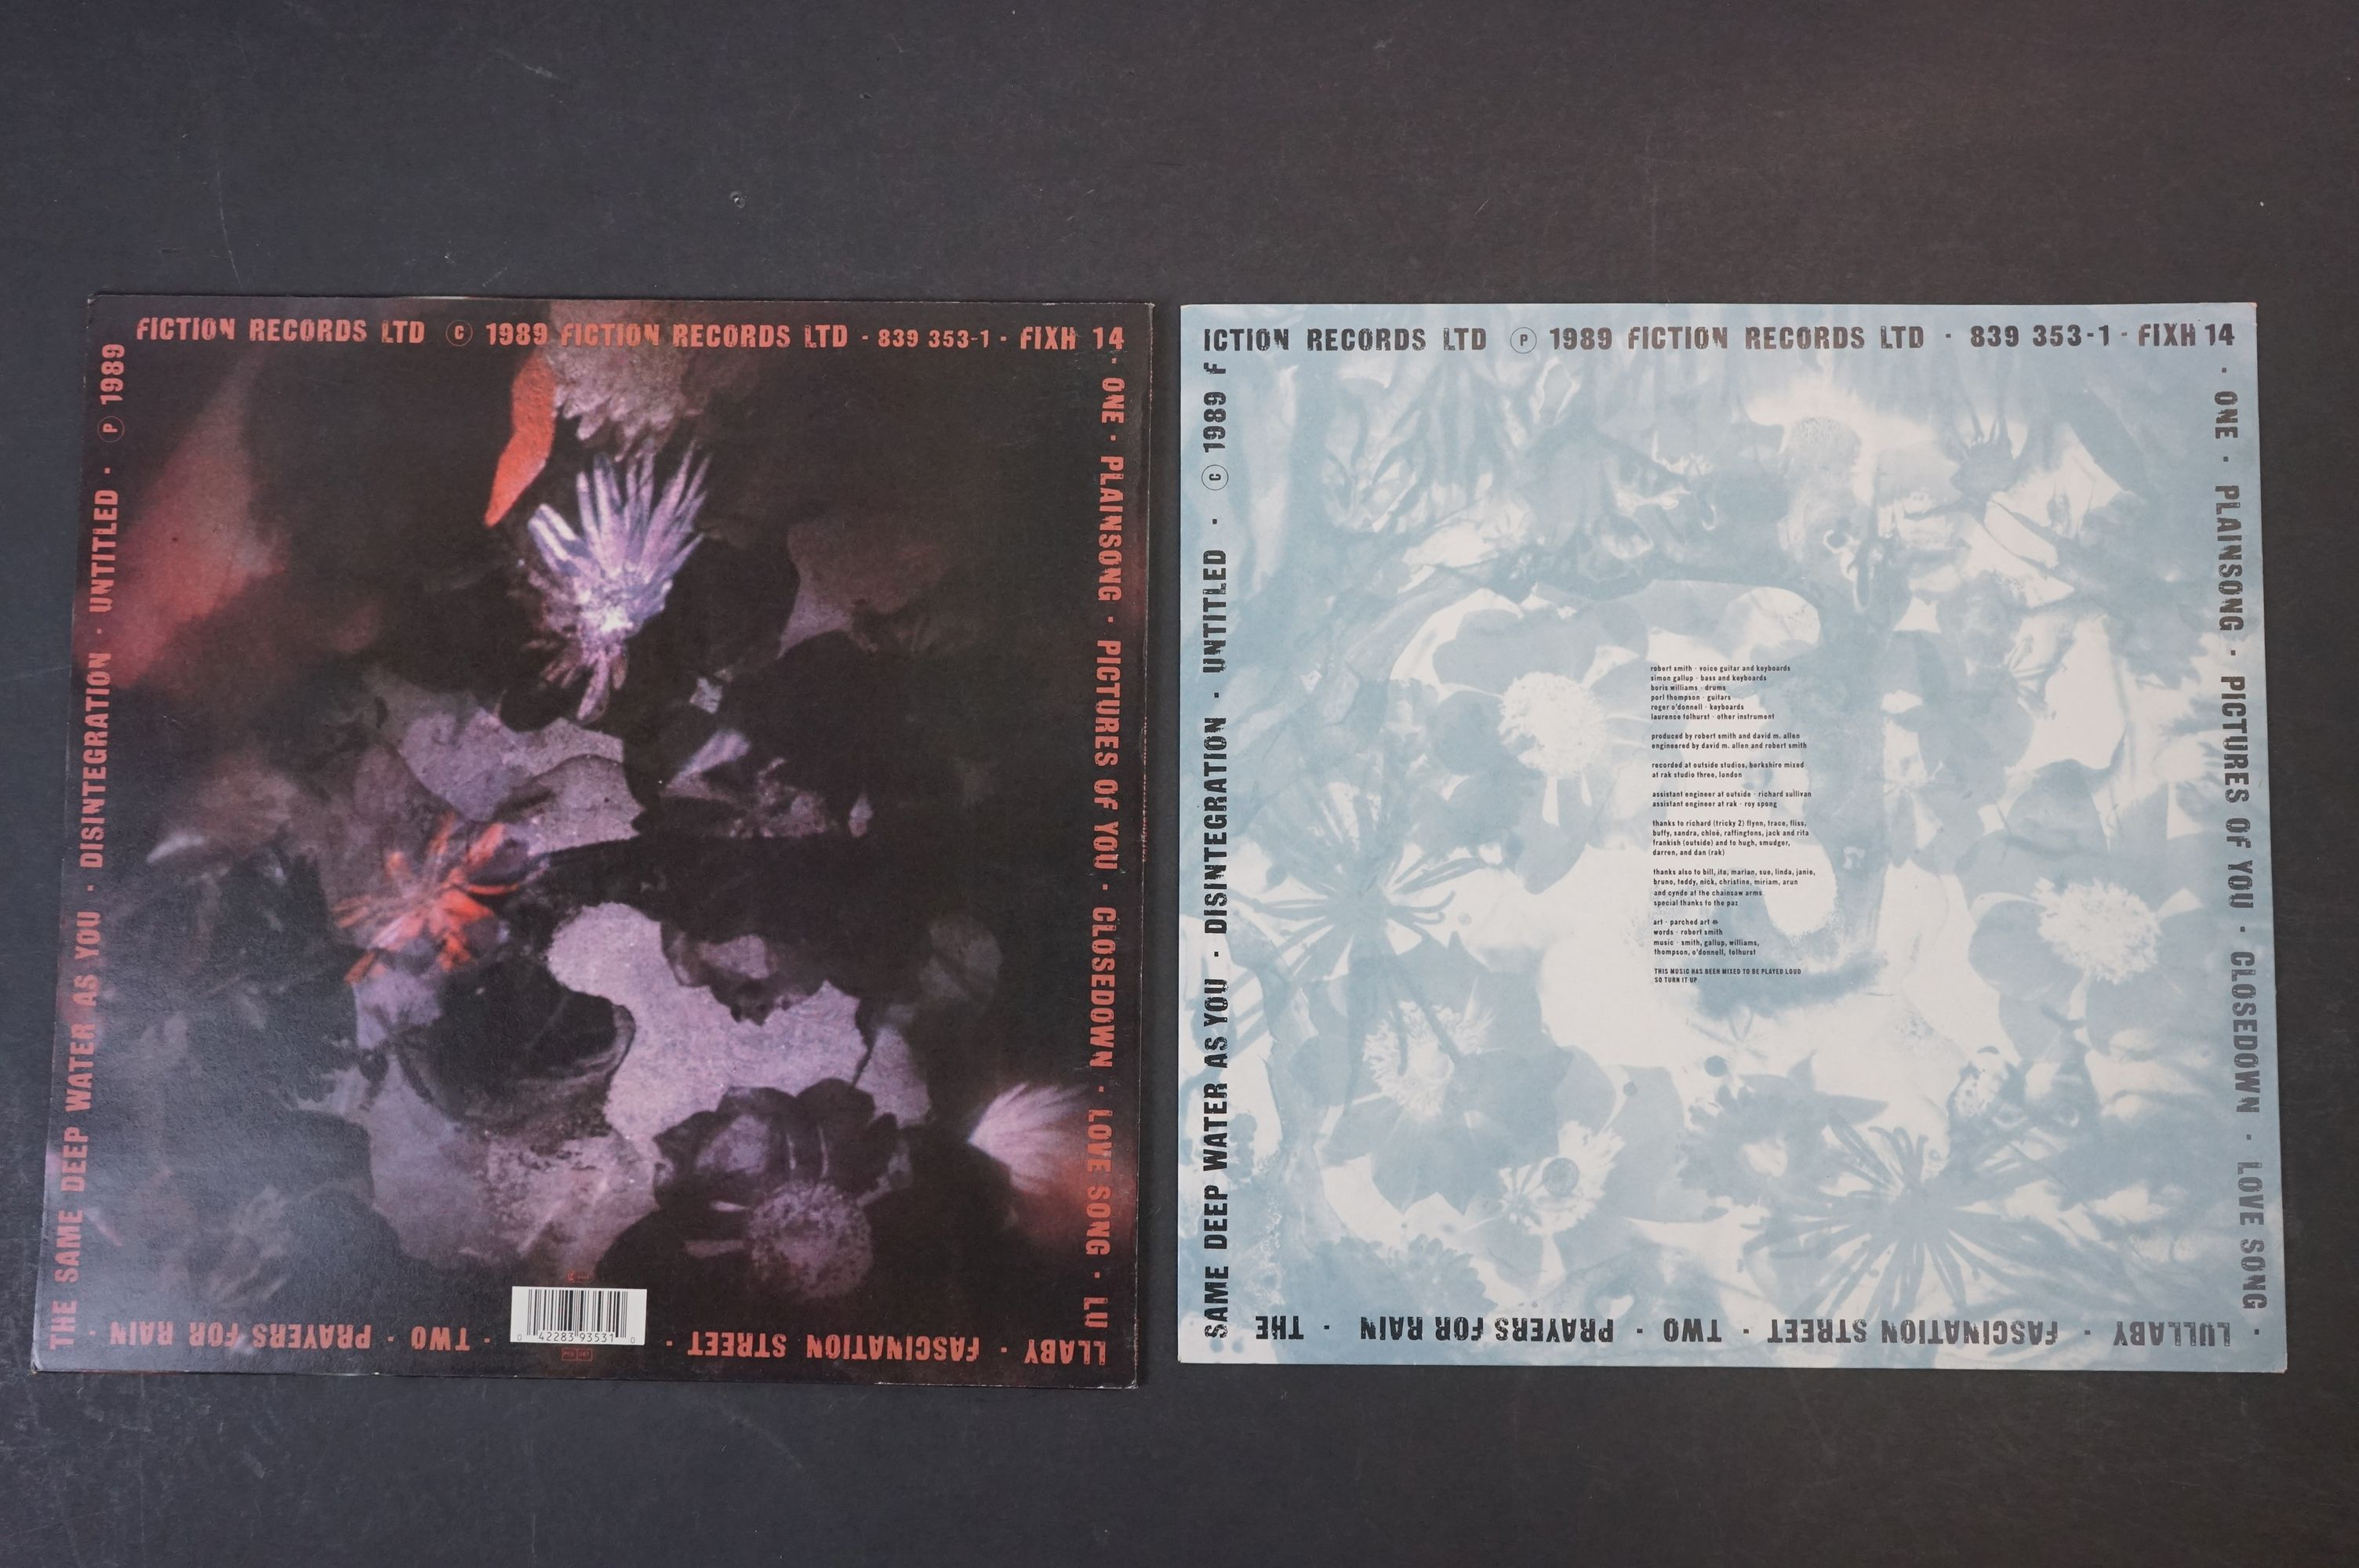 Vinyl - The Cure Disintegration LP on Fiction Records FIXH14 with inner, vg+ with light marks - Image 2 of 5